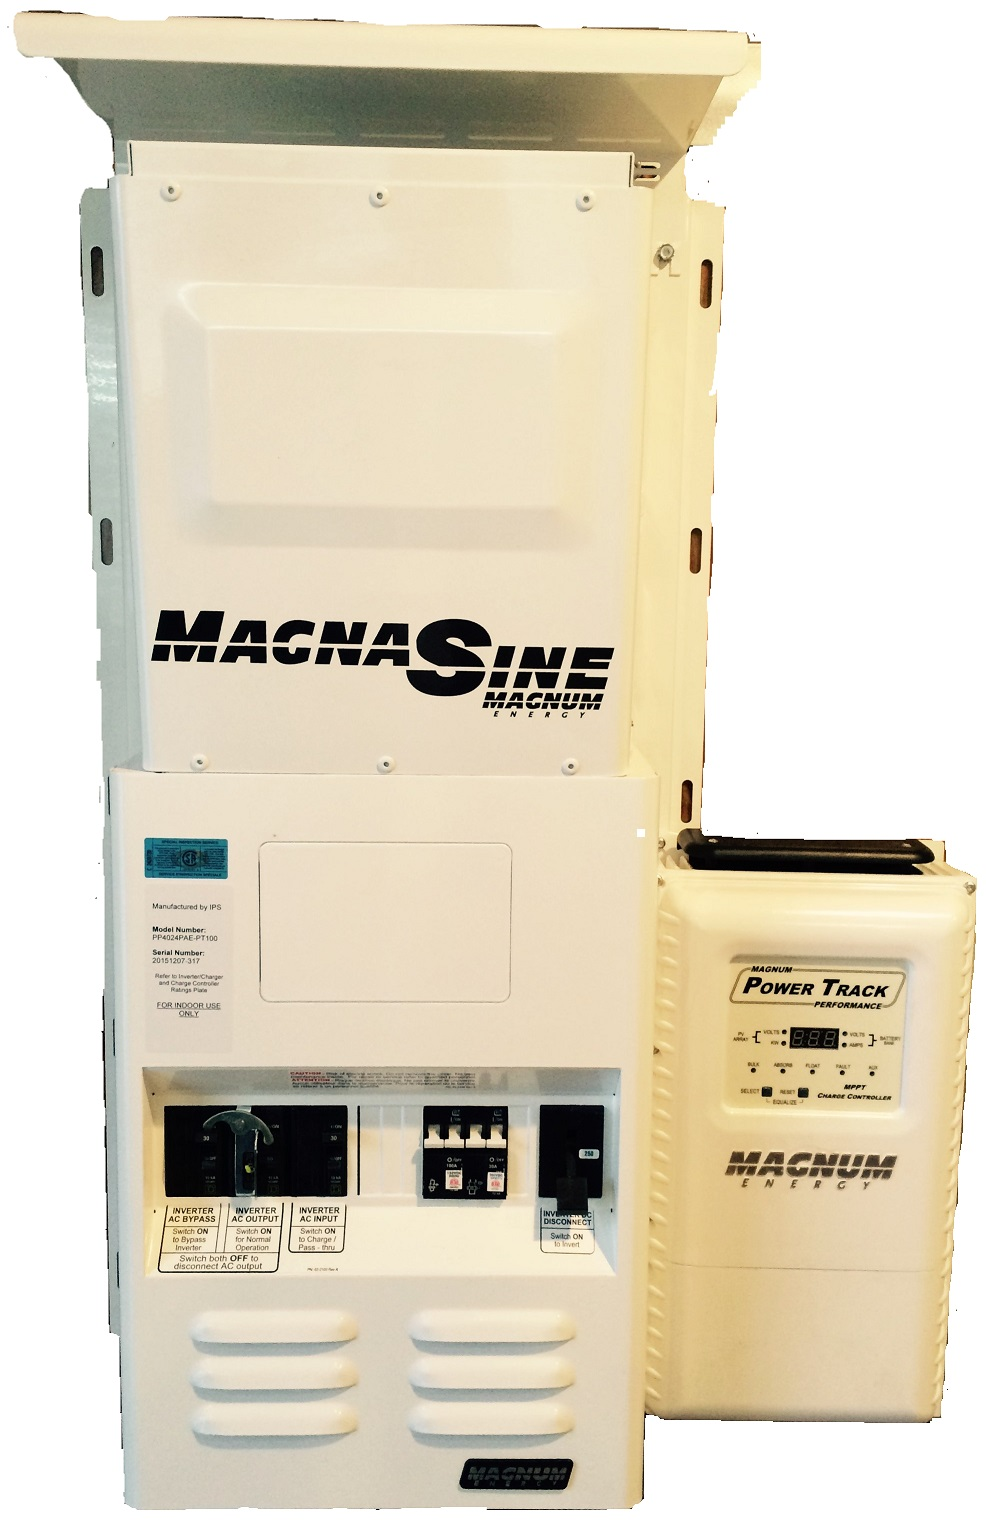 magnum-mini-power-panel-with-pt-100-magnum-mppt-solar-controller.jpg